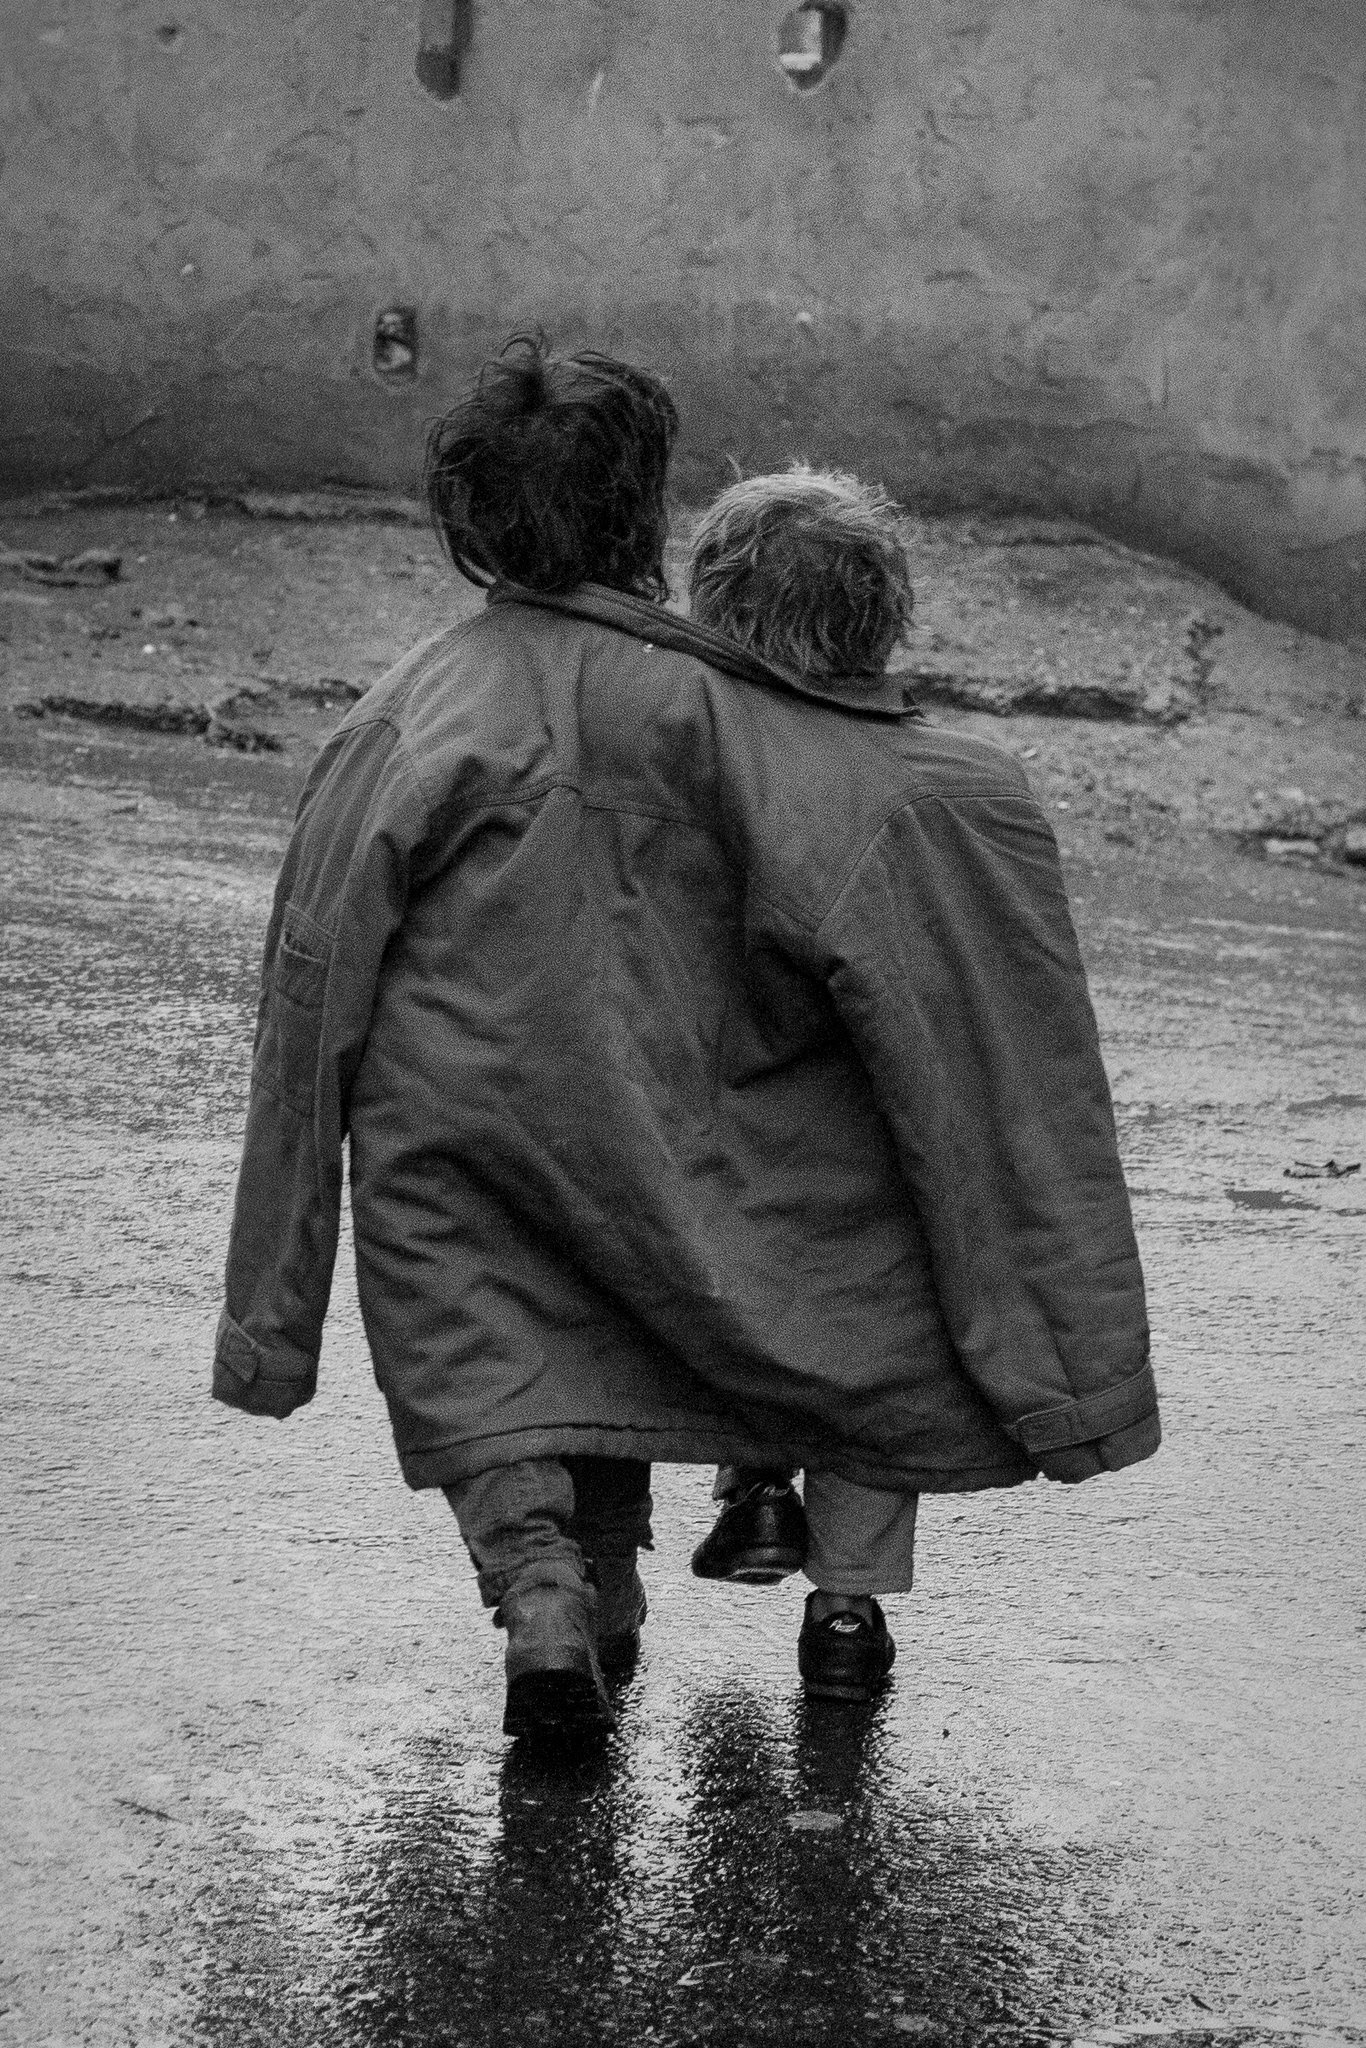 A coat for two